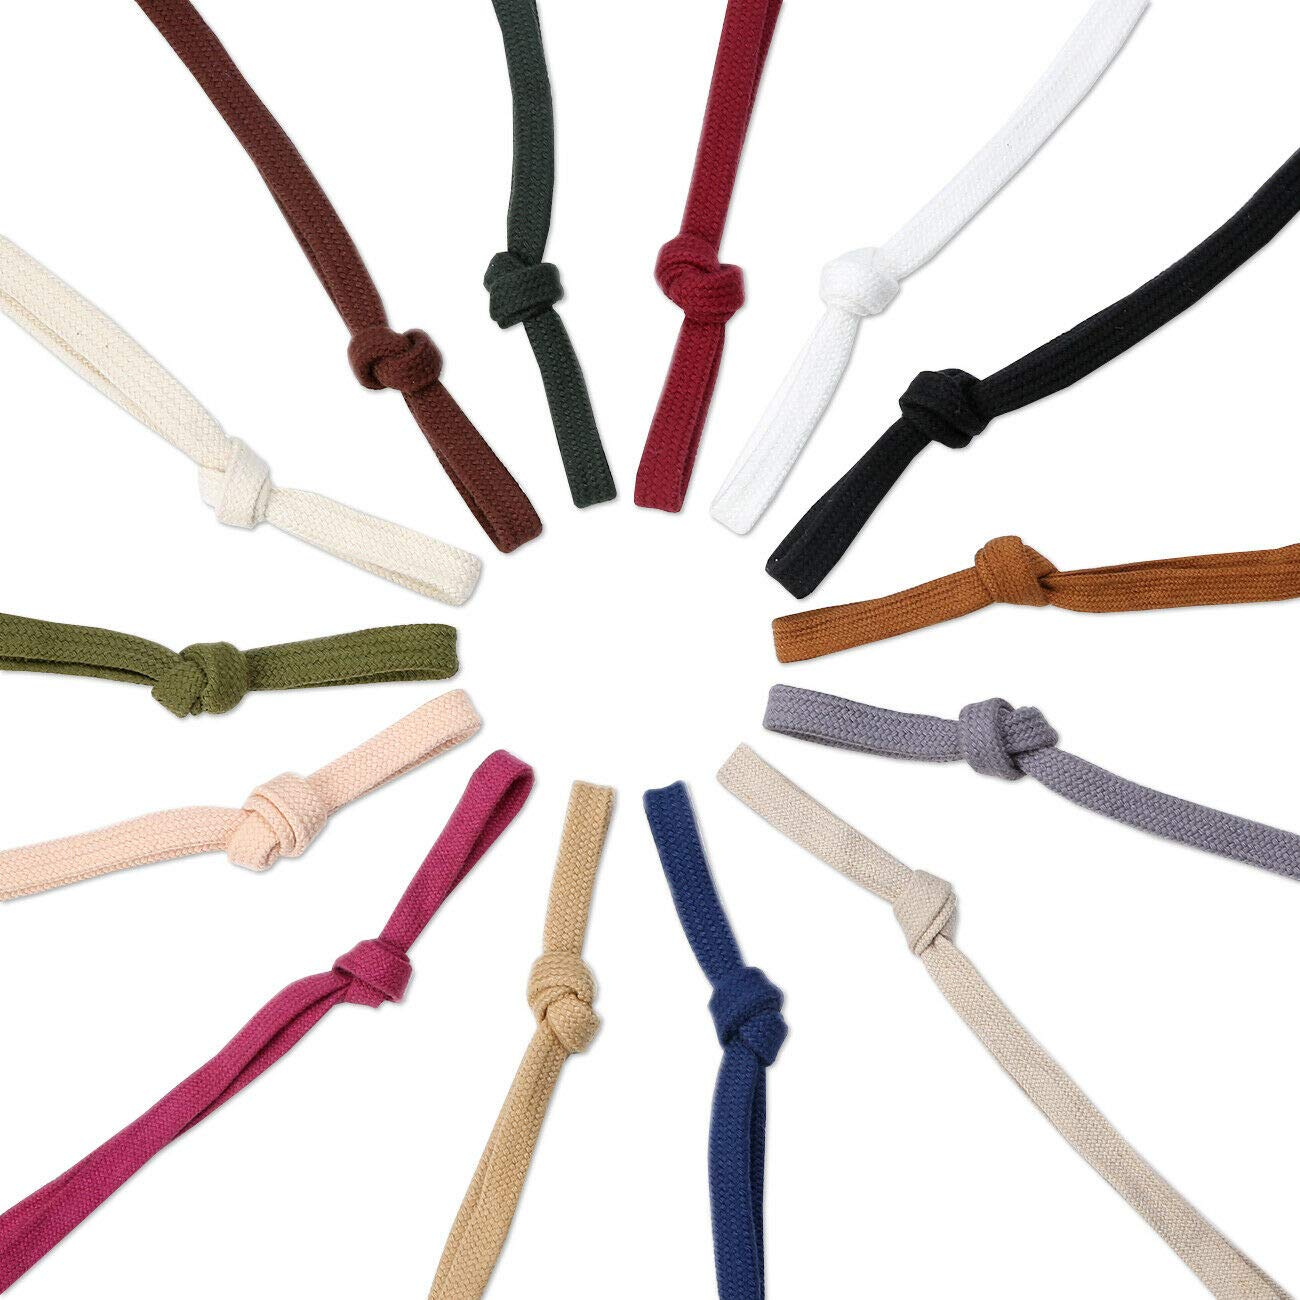 Sweatshirt Hoodie Flat Cotton Tape Ribbon Cord Rope,10 & 15mm,Garment Hoody Drawstring. 26 Colours, 1mt, 5mts, 25mts and 45mts Rolls. Colours Match Neotrims Flanged 12mm Piping and 6mm Round Cord